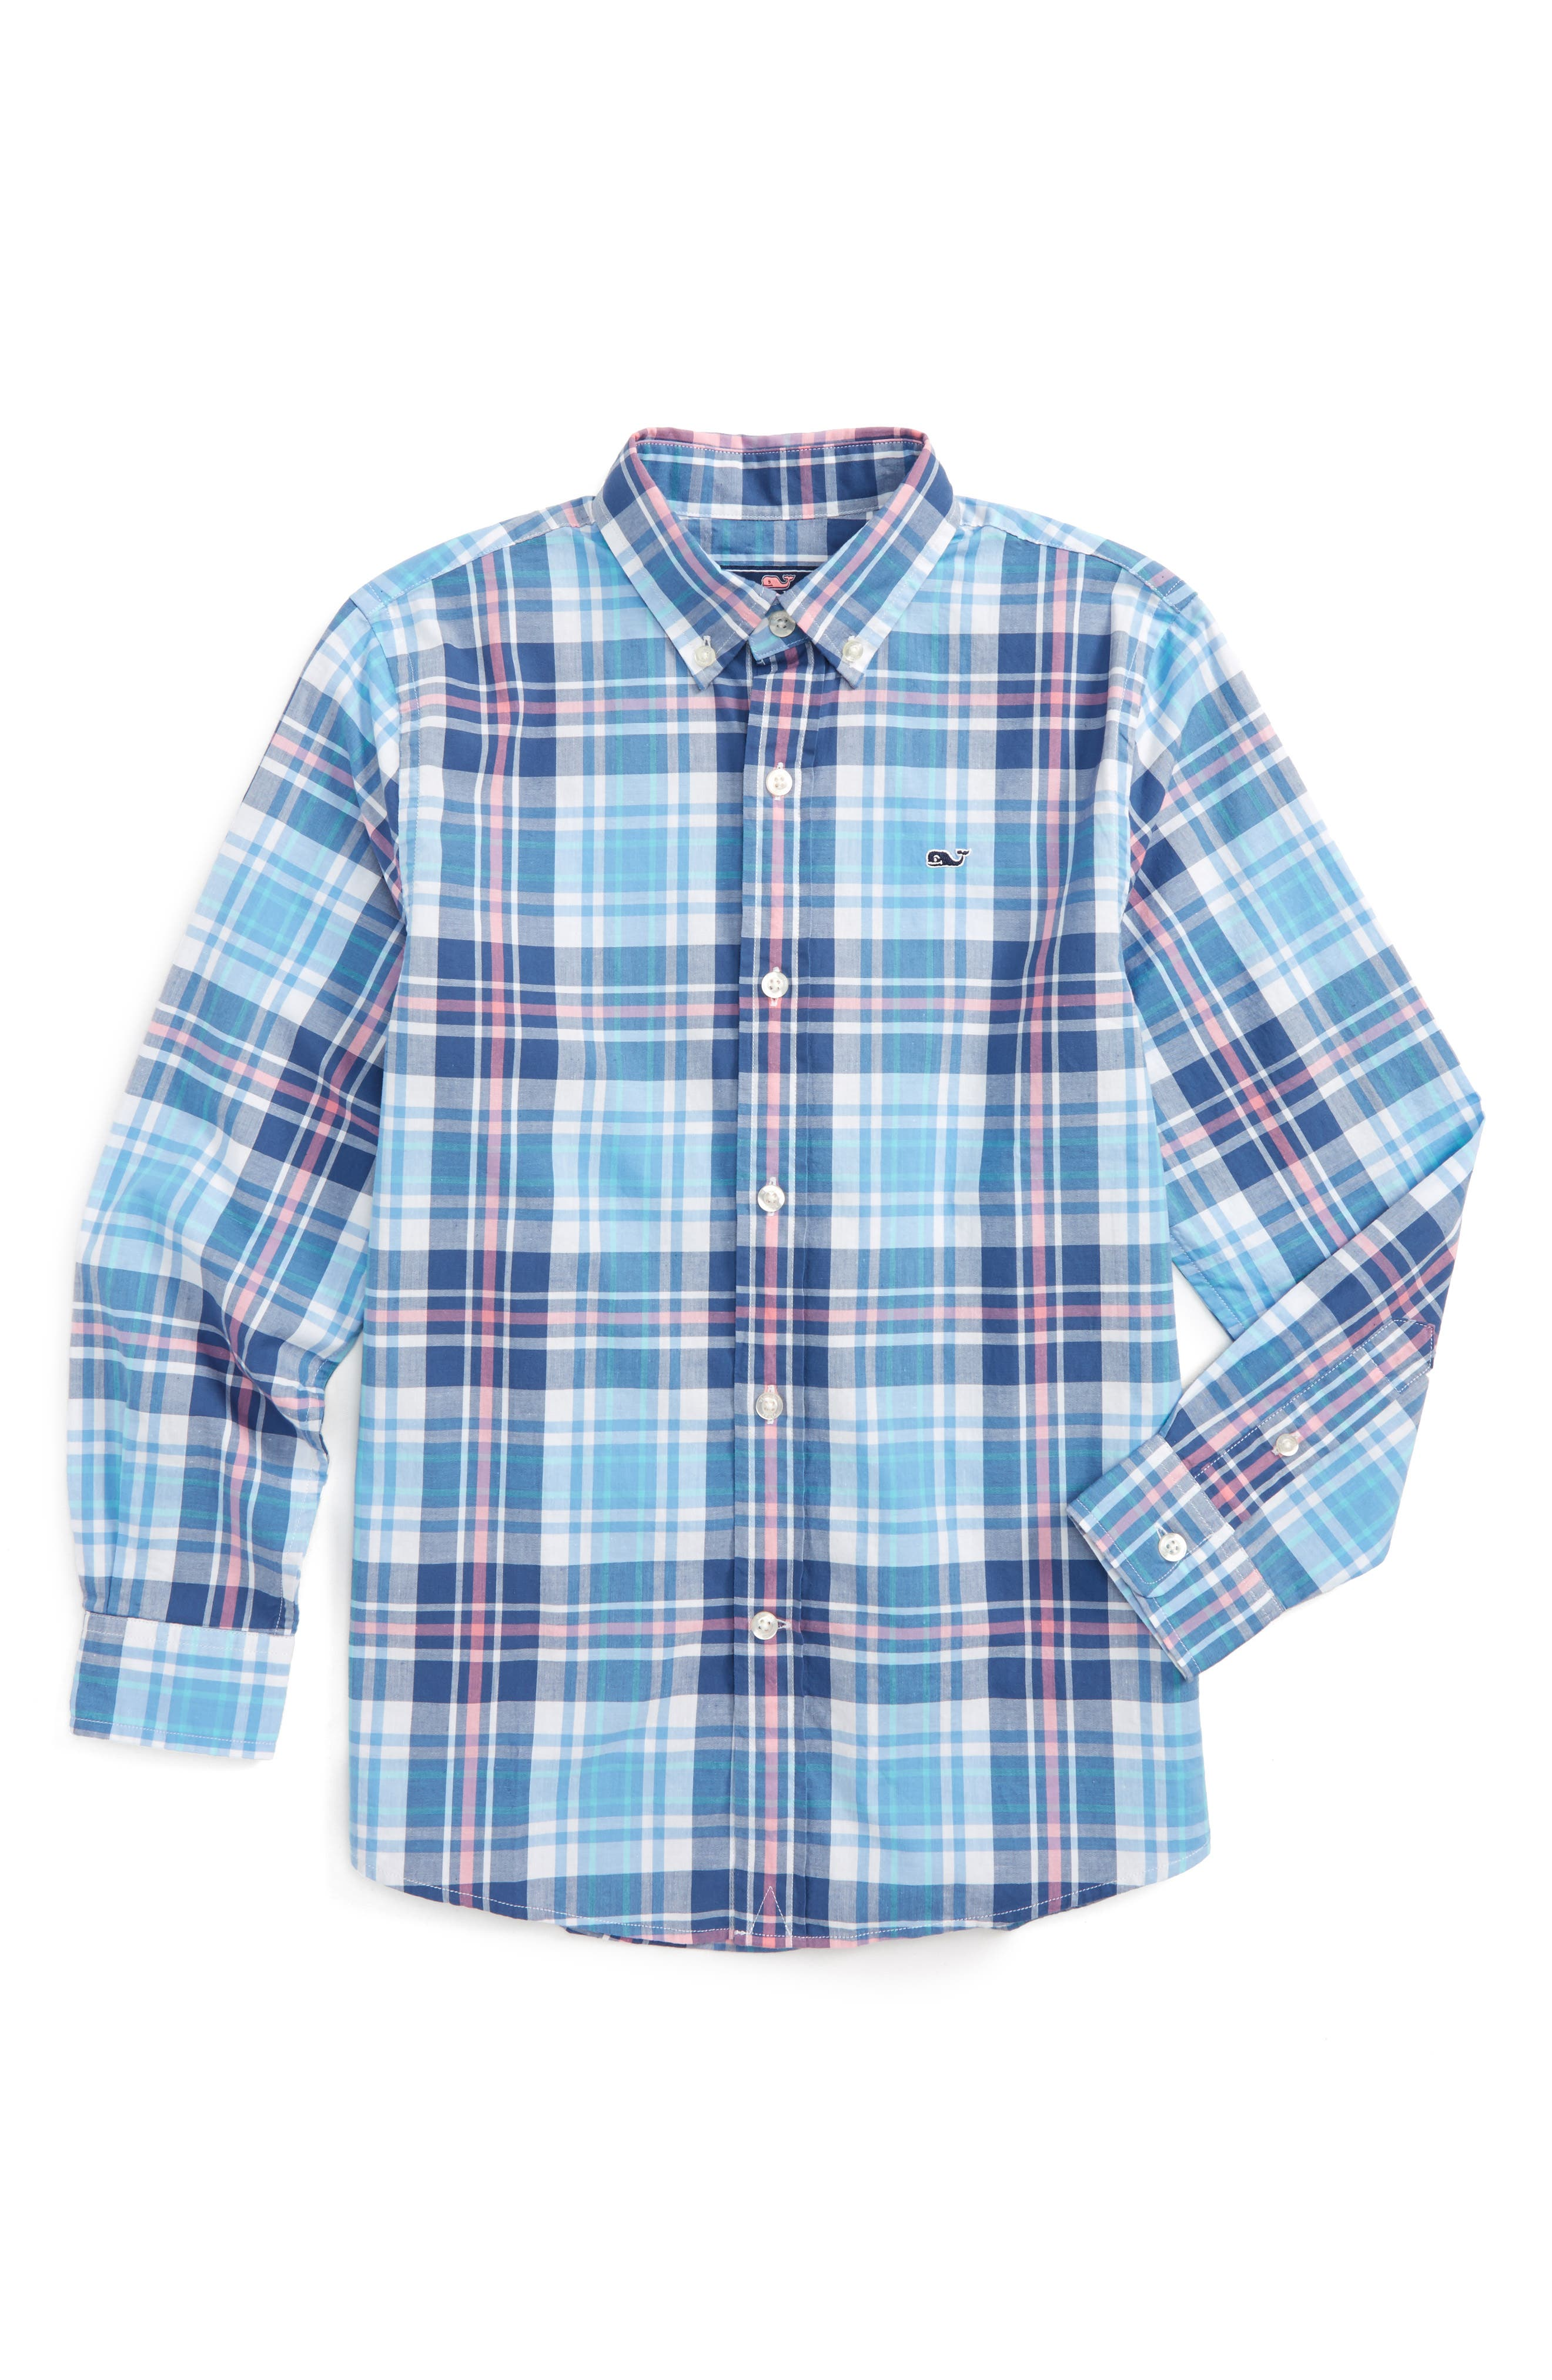 Fort Sumter Plaid Whale Shirt,                         Main,                         color, 406